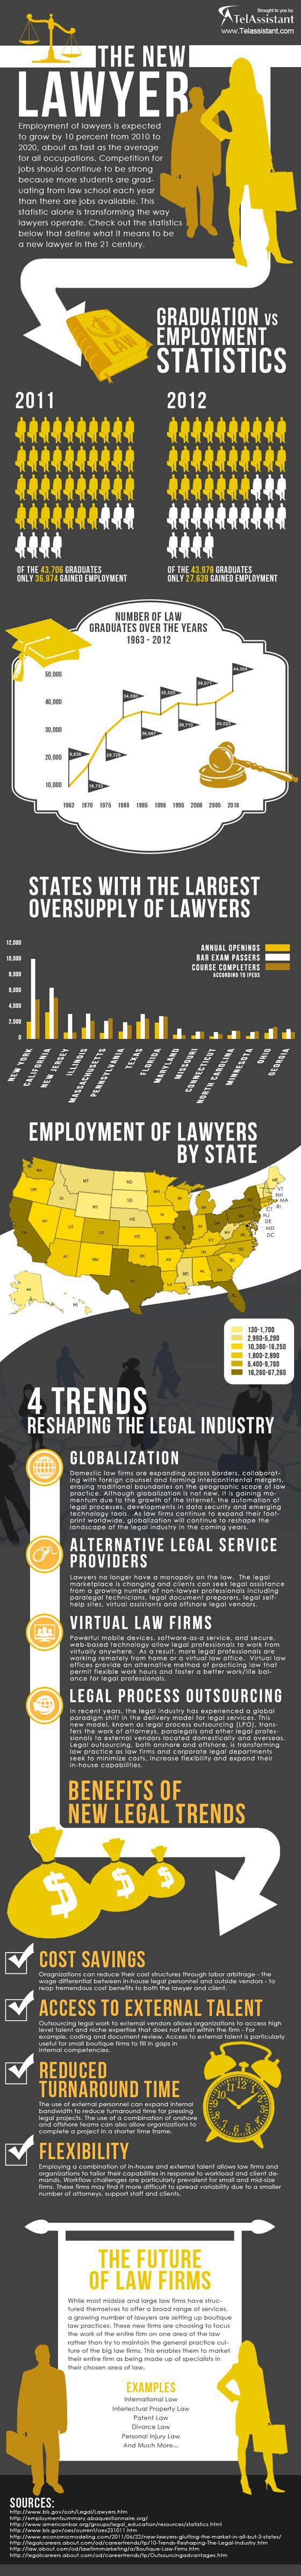 Graphic on Lawyer Employment